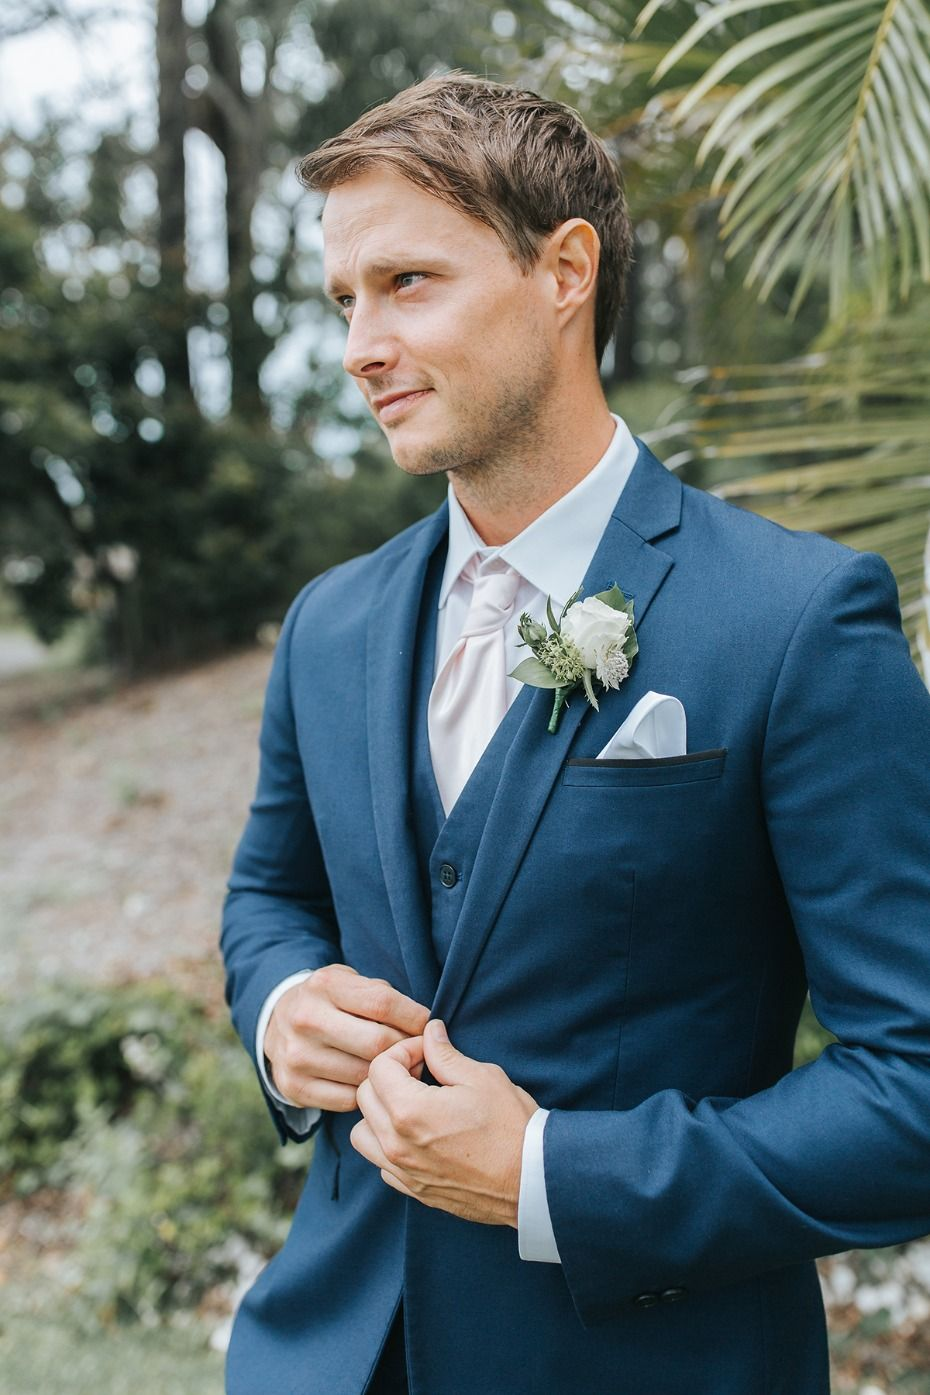 How To Have An All White Wedding On The Gold Coast | Gold coast